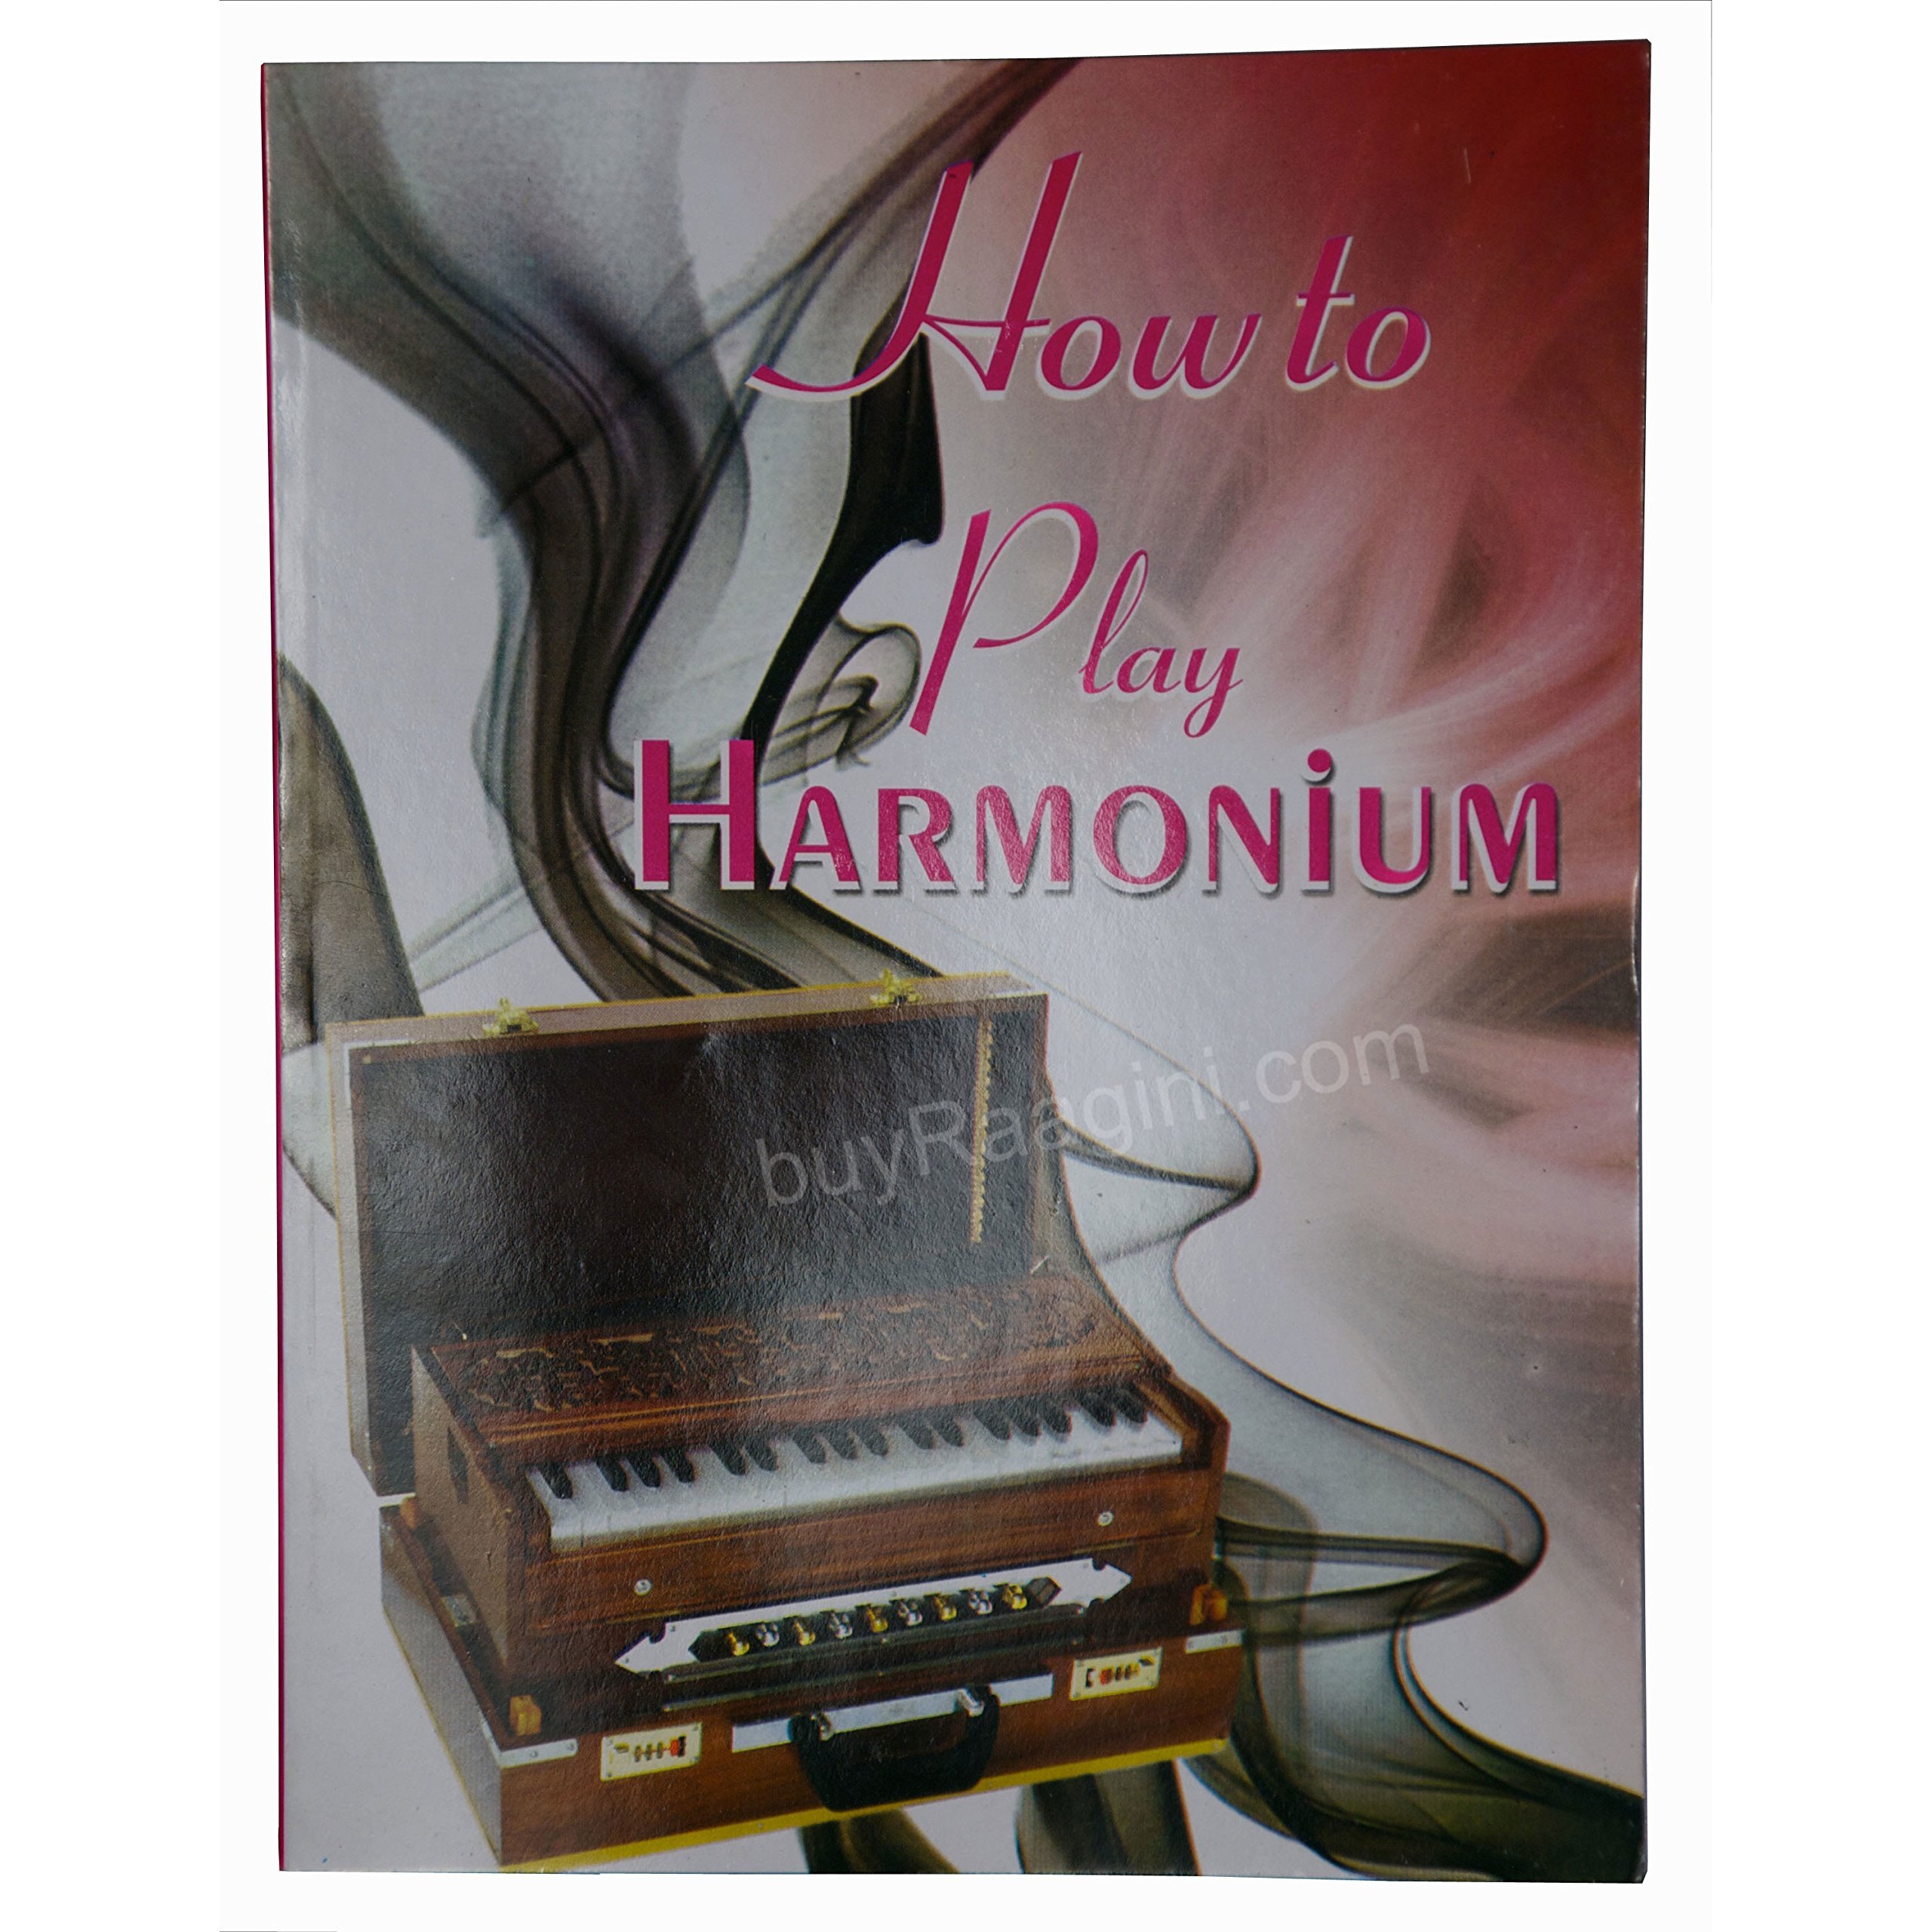 Harmonium Instrument, BINA No. 17B, In USA, Standard, 9 Stops, 3 1/2 Octaves, Rosewood Color, Tuned To A440, Coupler, Special Reeds, Bag, Book (PDI-AIG) by Bina